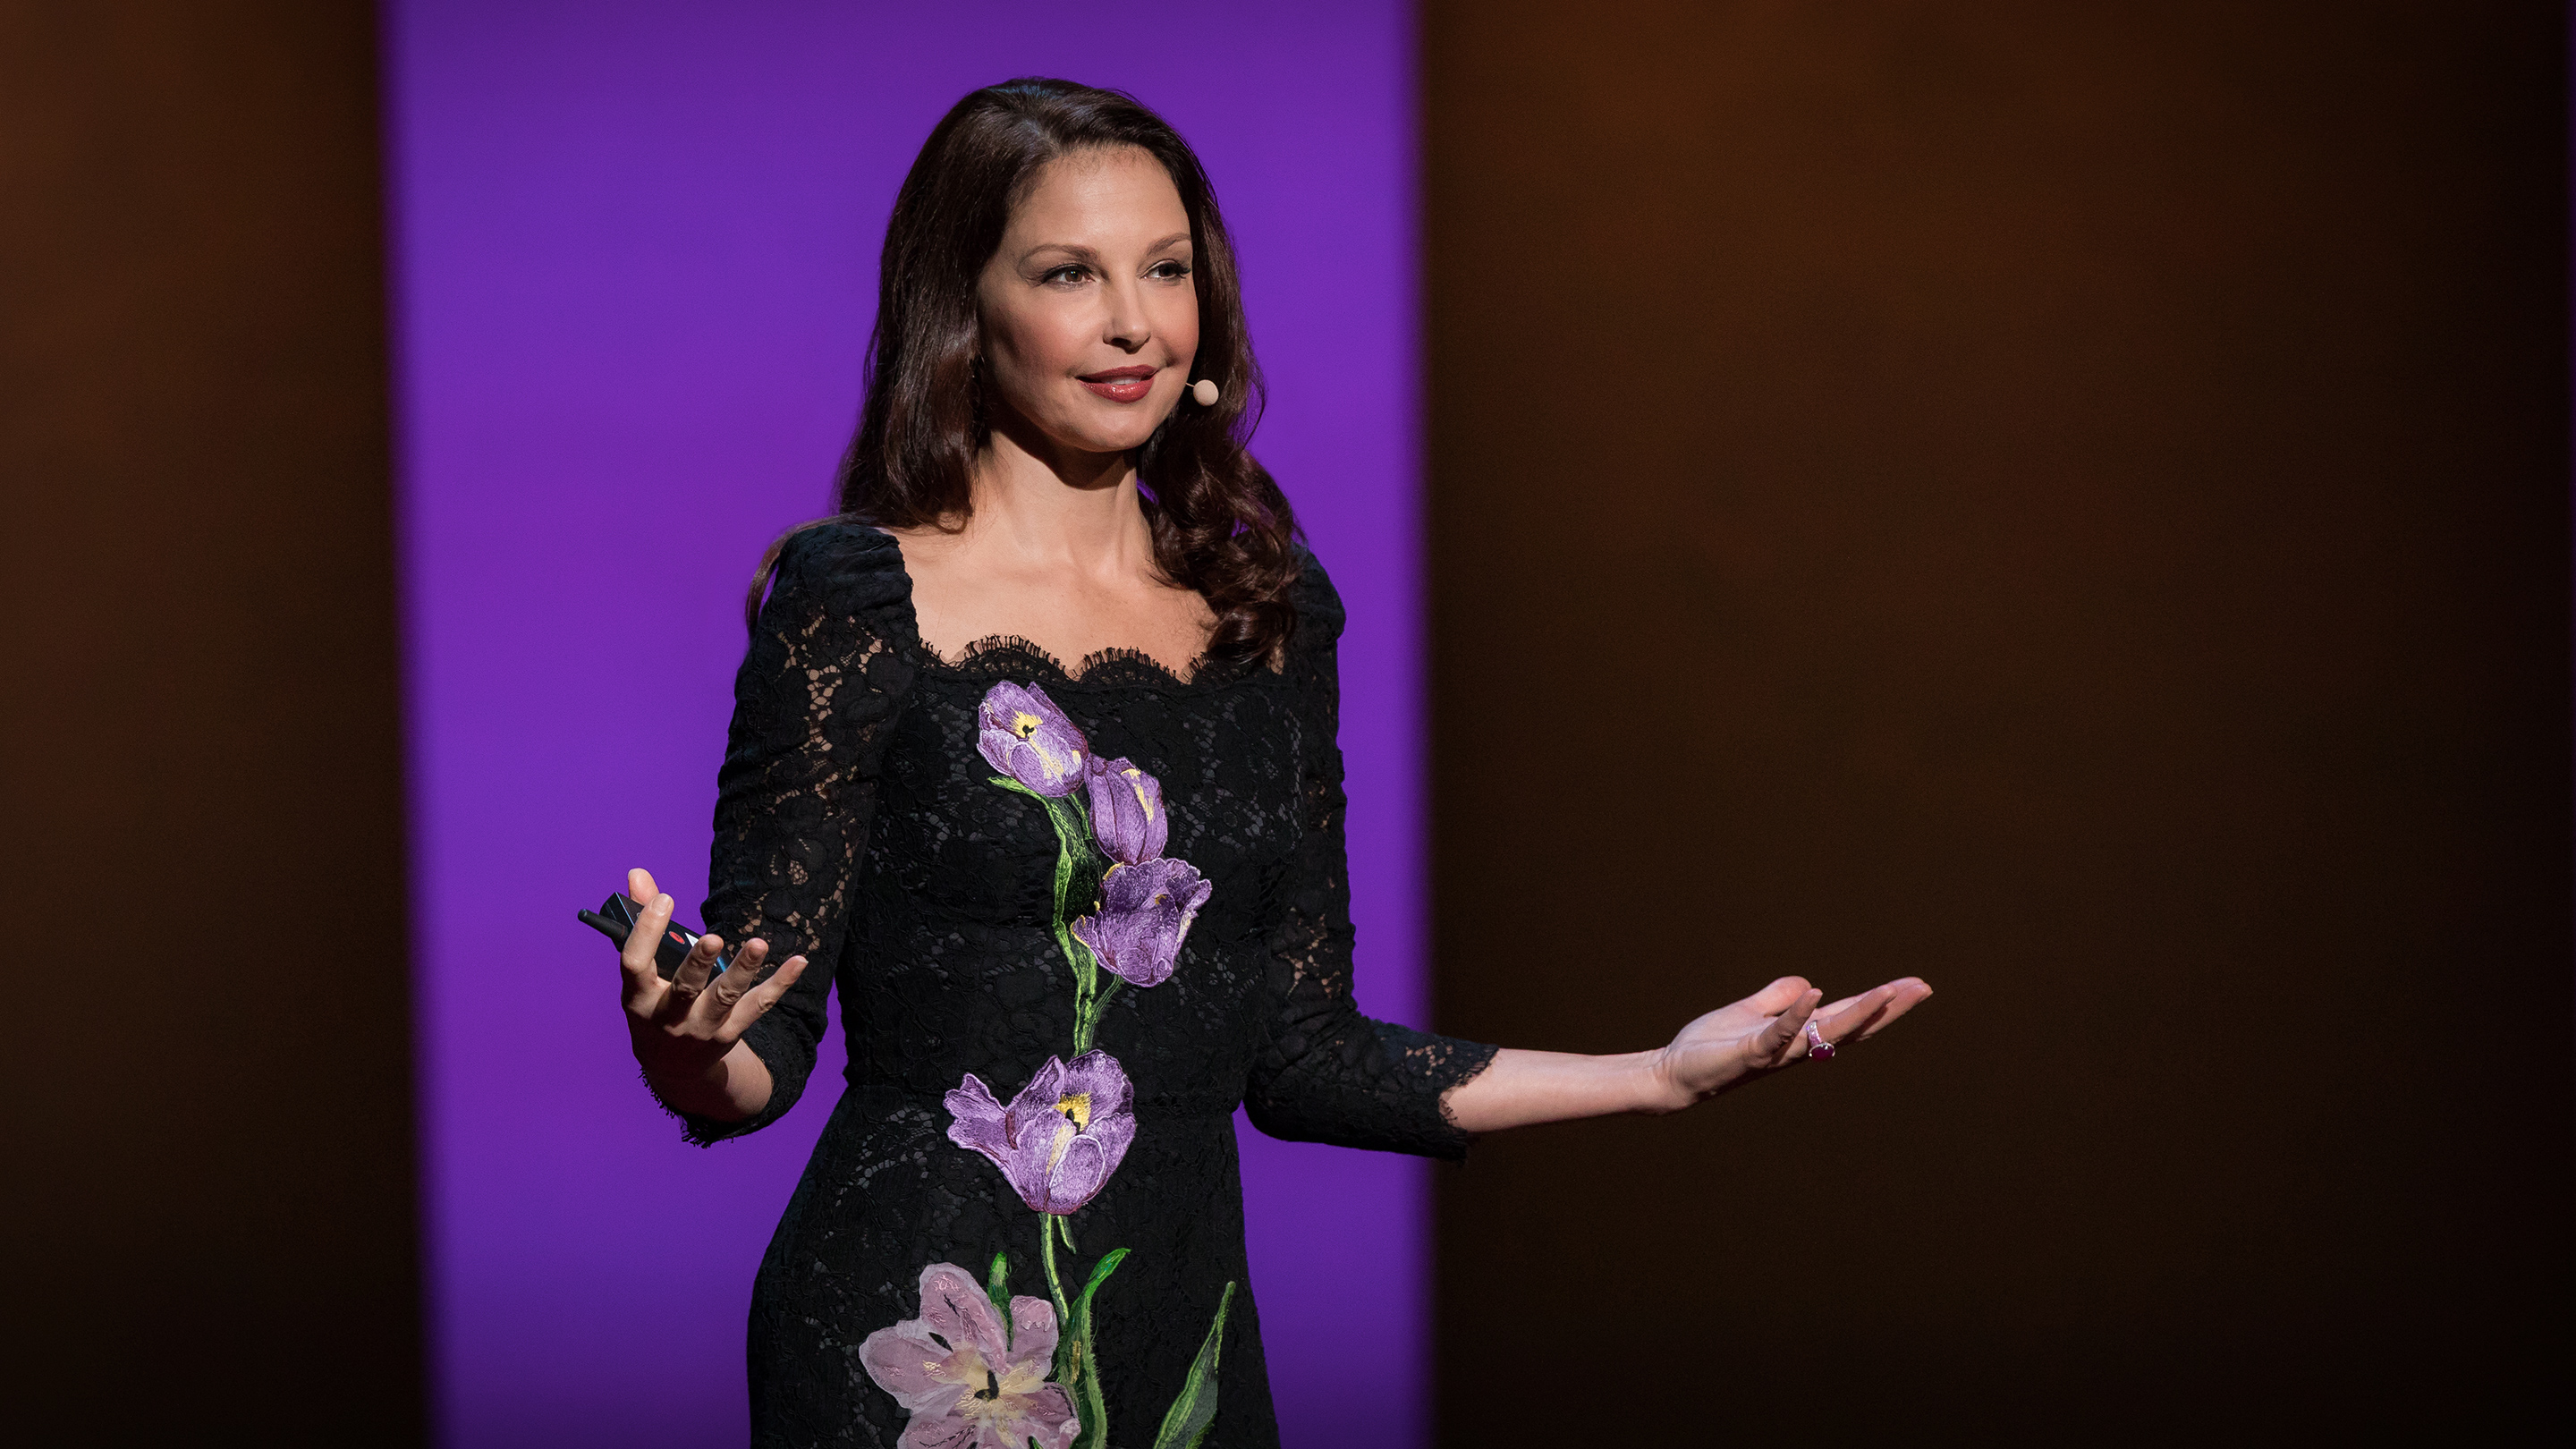 Ashley Judd Cunt how online abuse of women has spiraled out of control